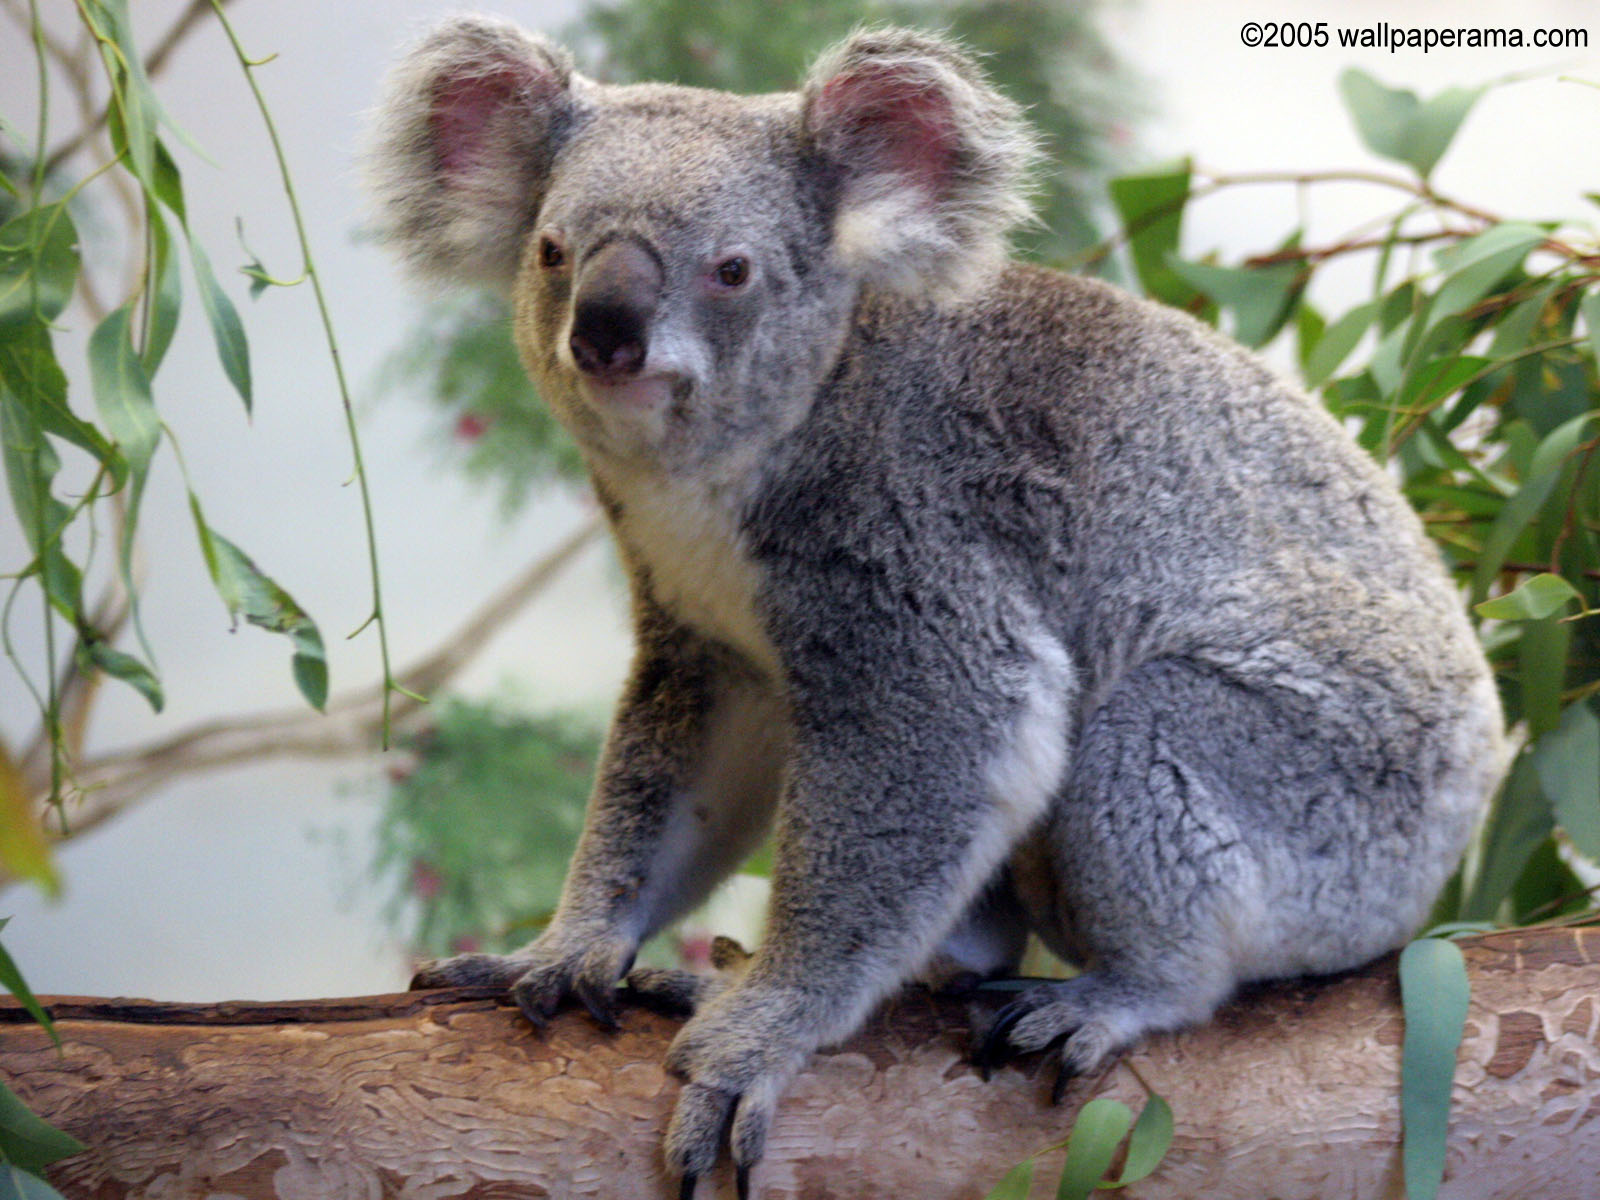 Koala Bear Wallpaper Free Hd Backgrounds Images Pictures